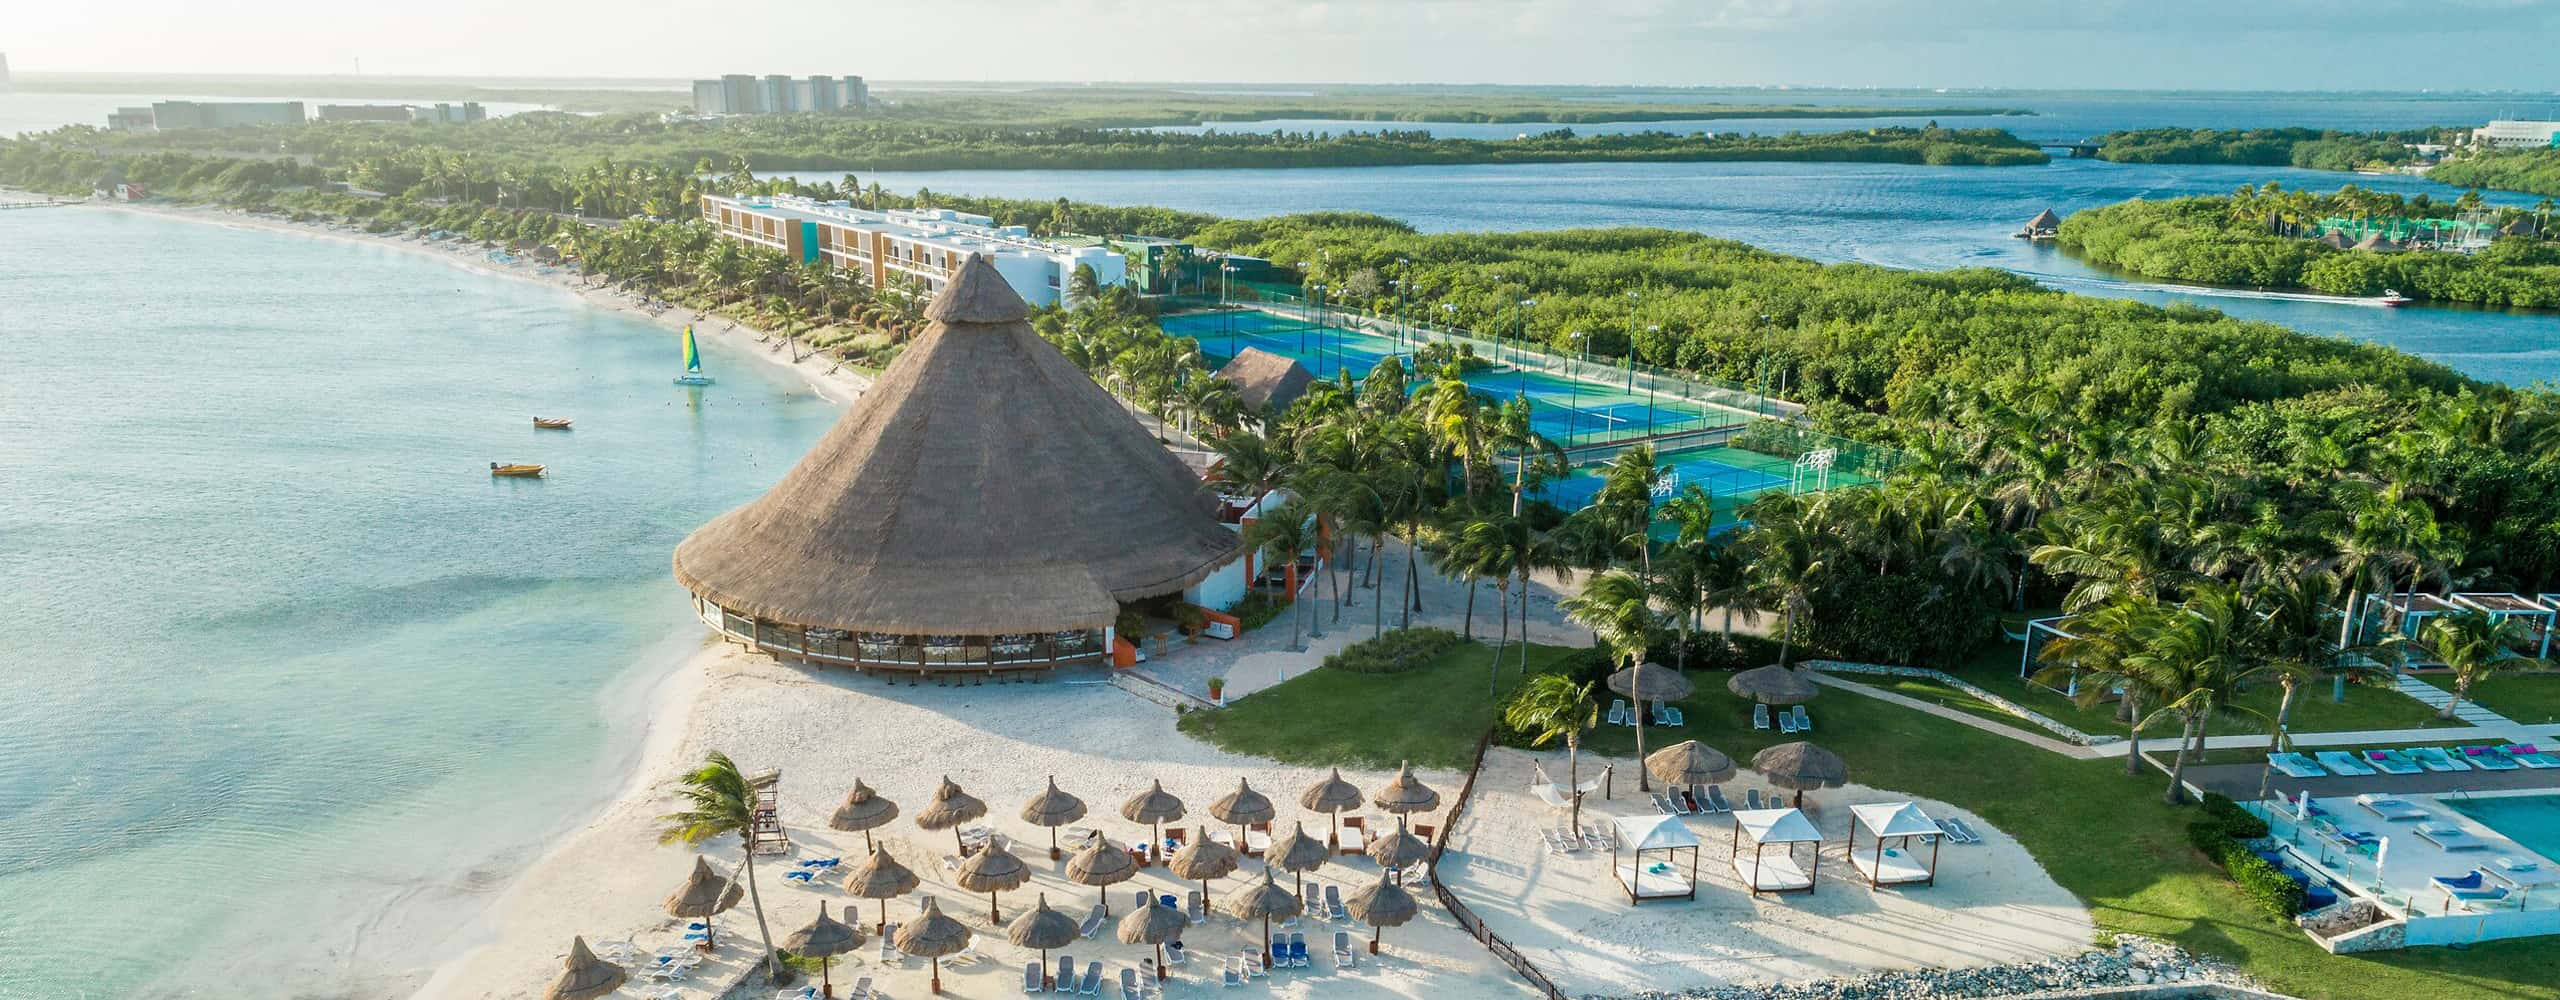 Club Med Cancun Yucatan, Mexico